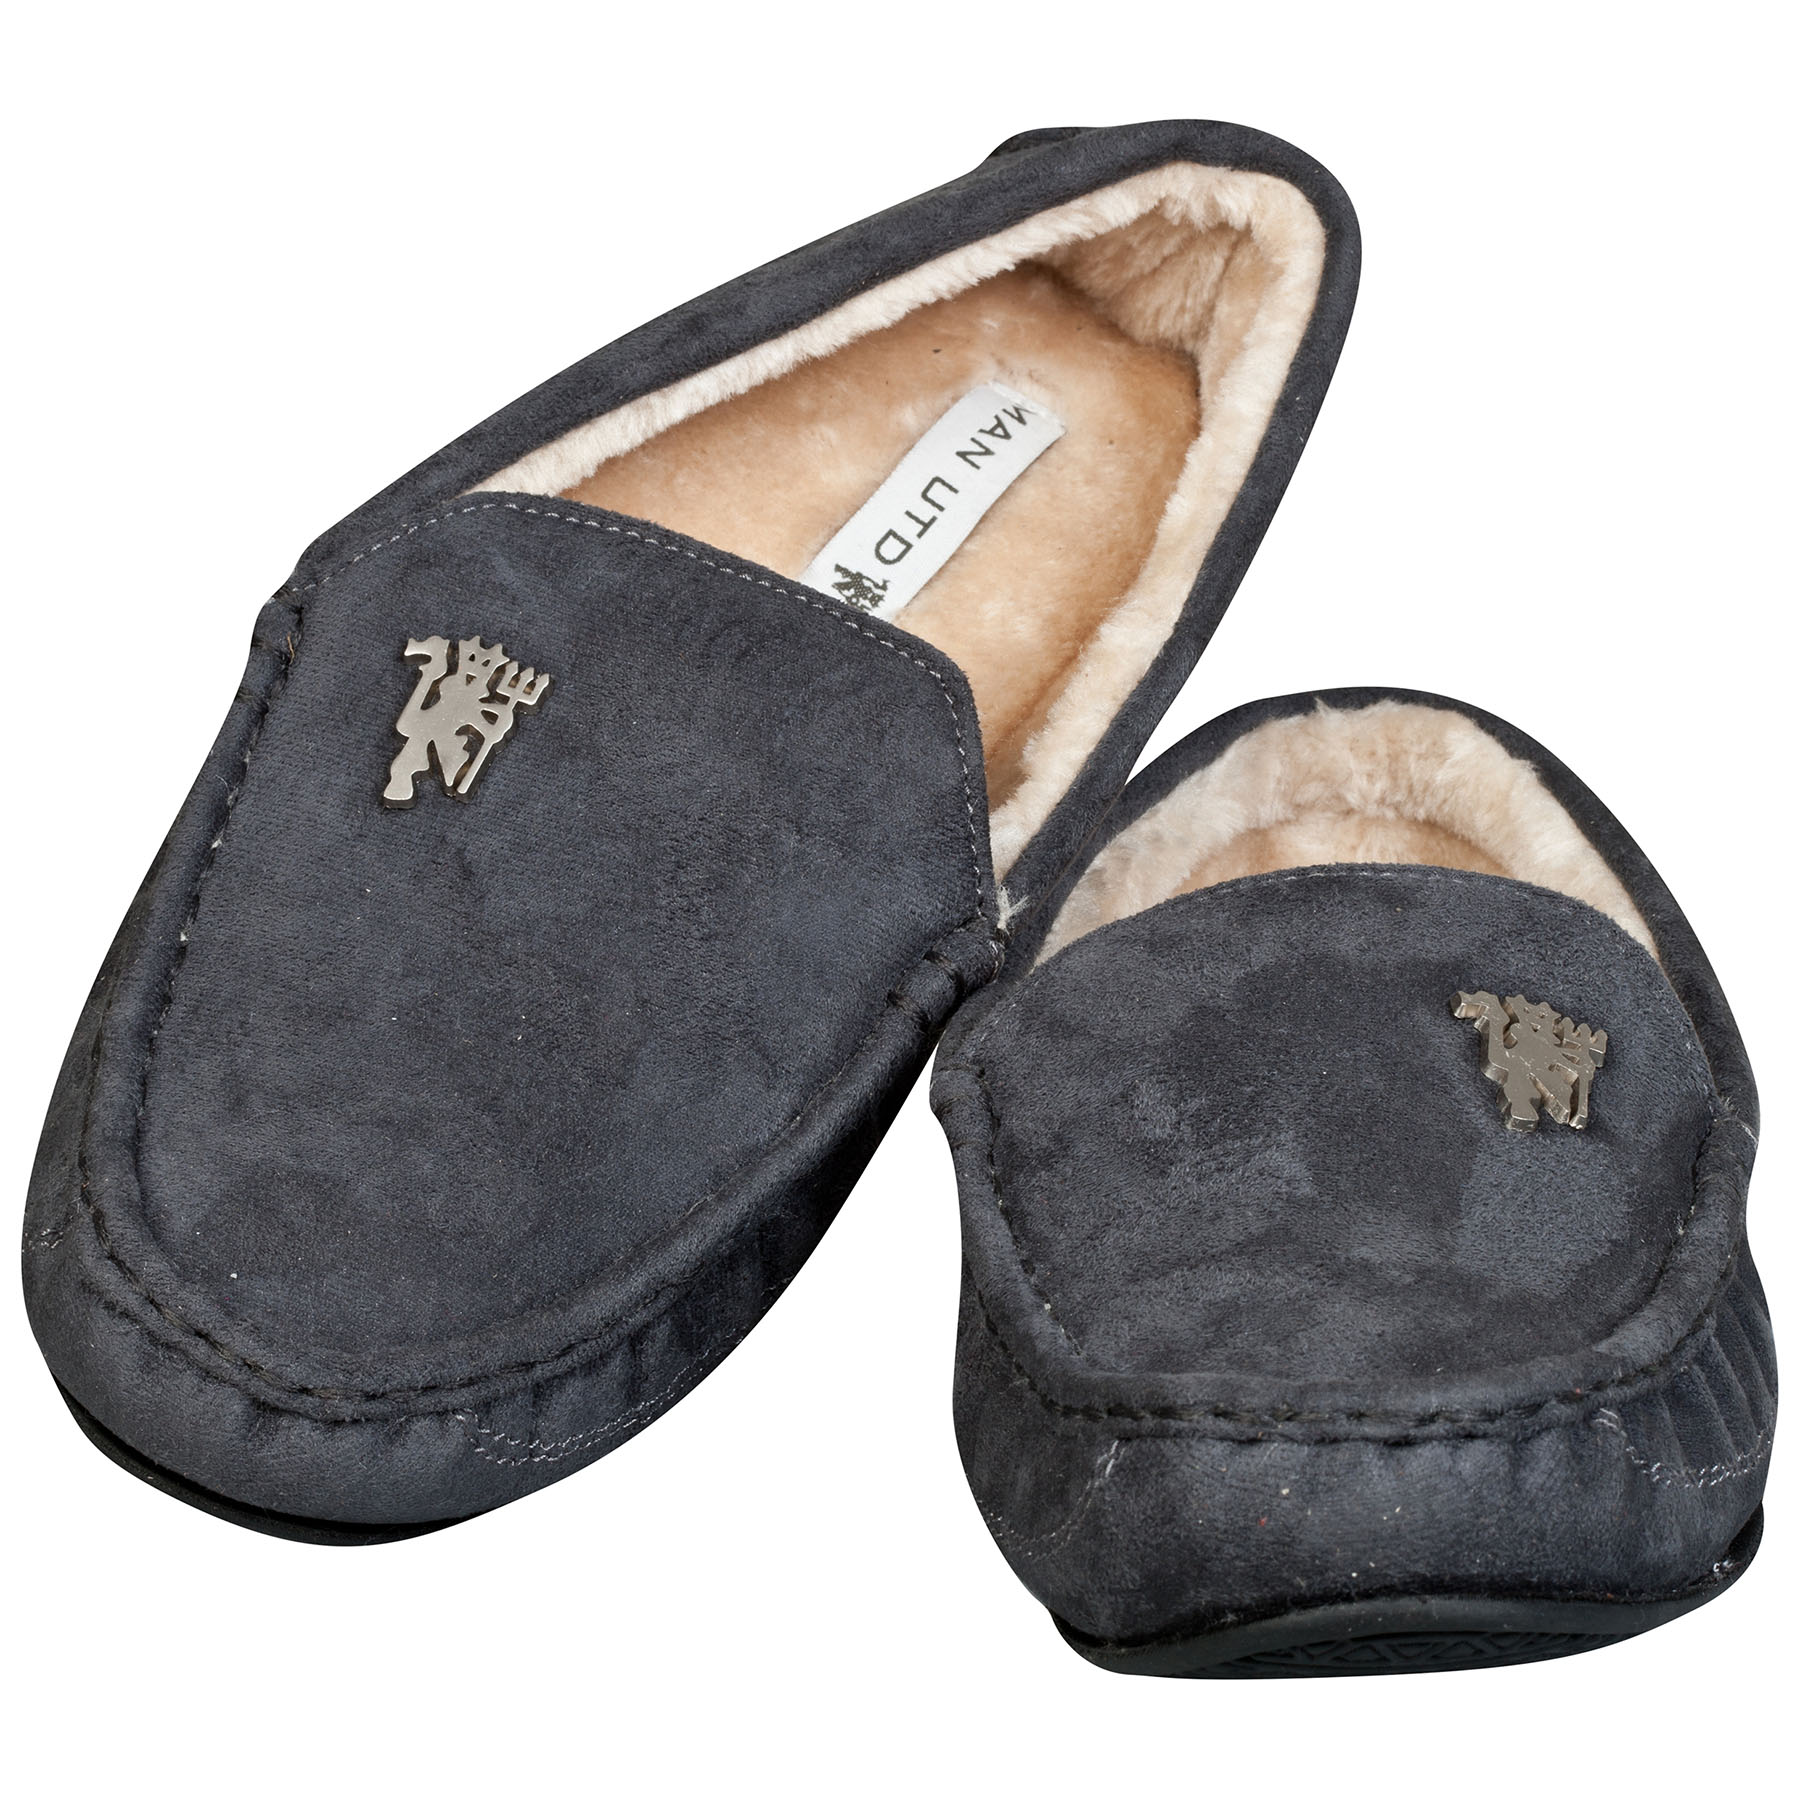 Manchester United Moccasin Slippers - Charcoal - Mens